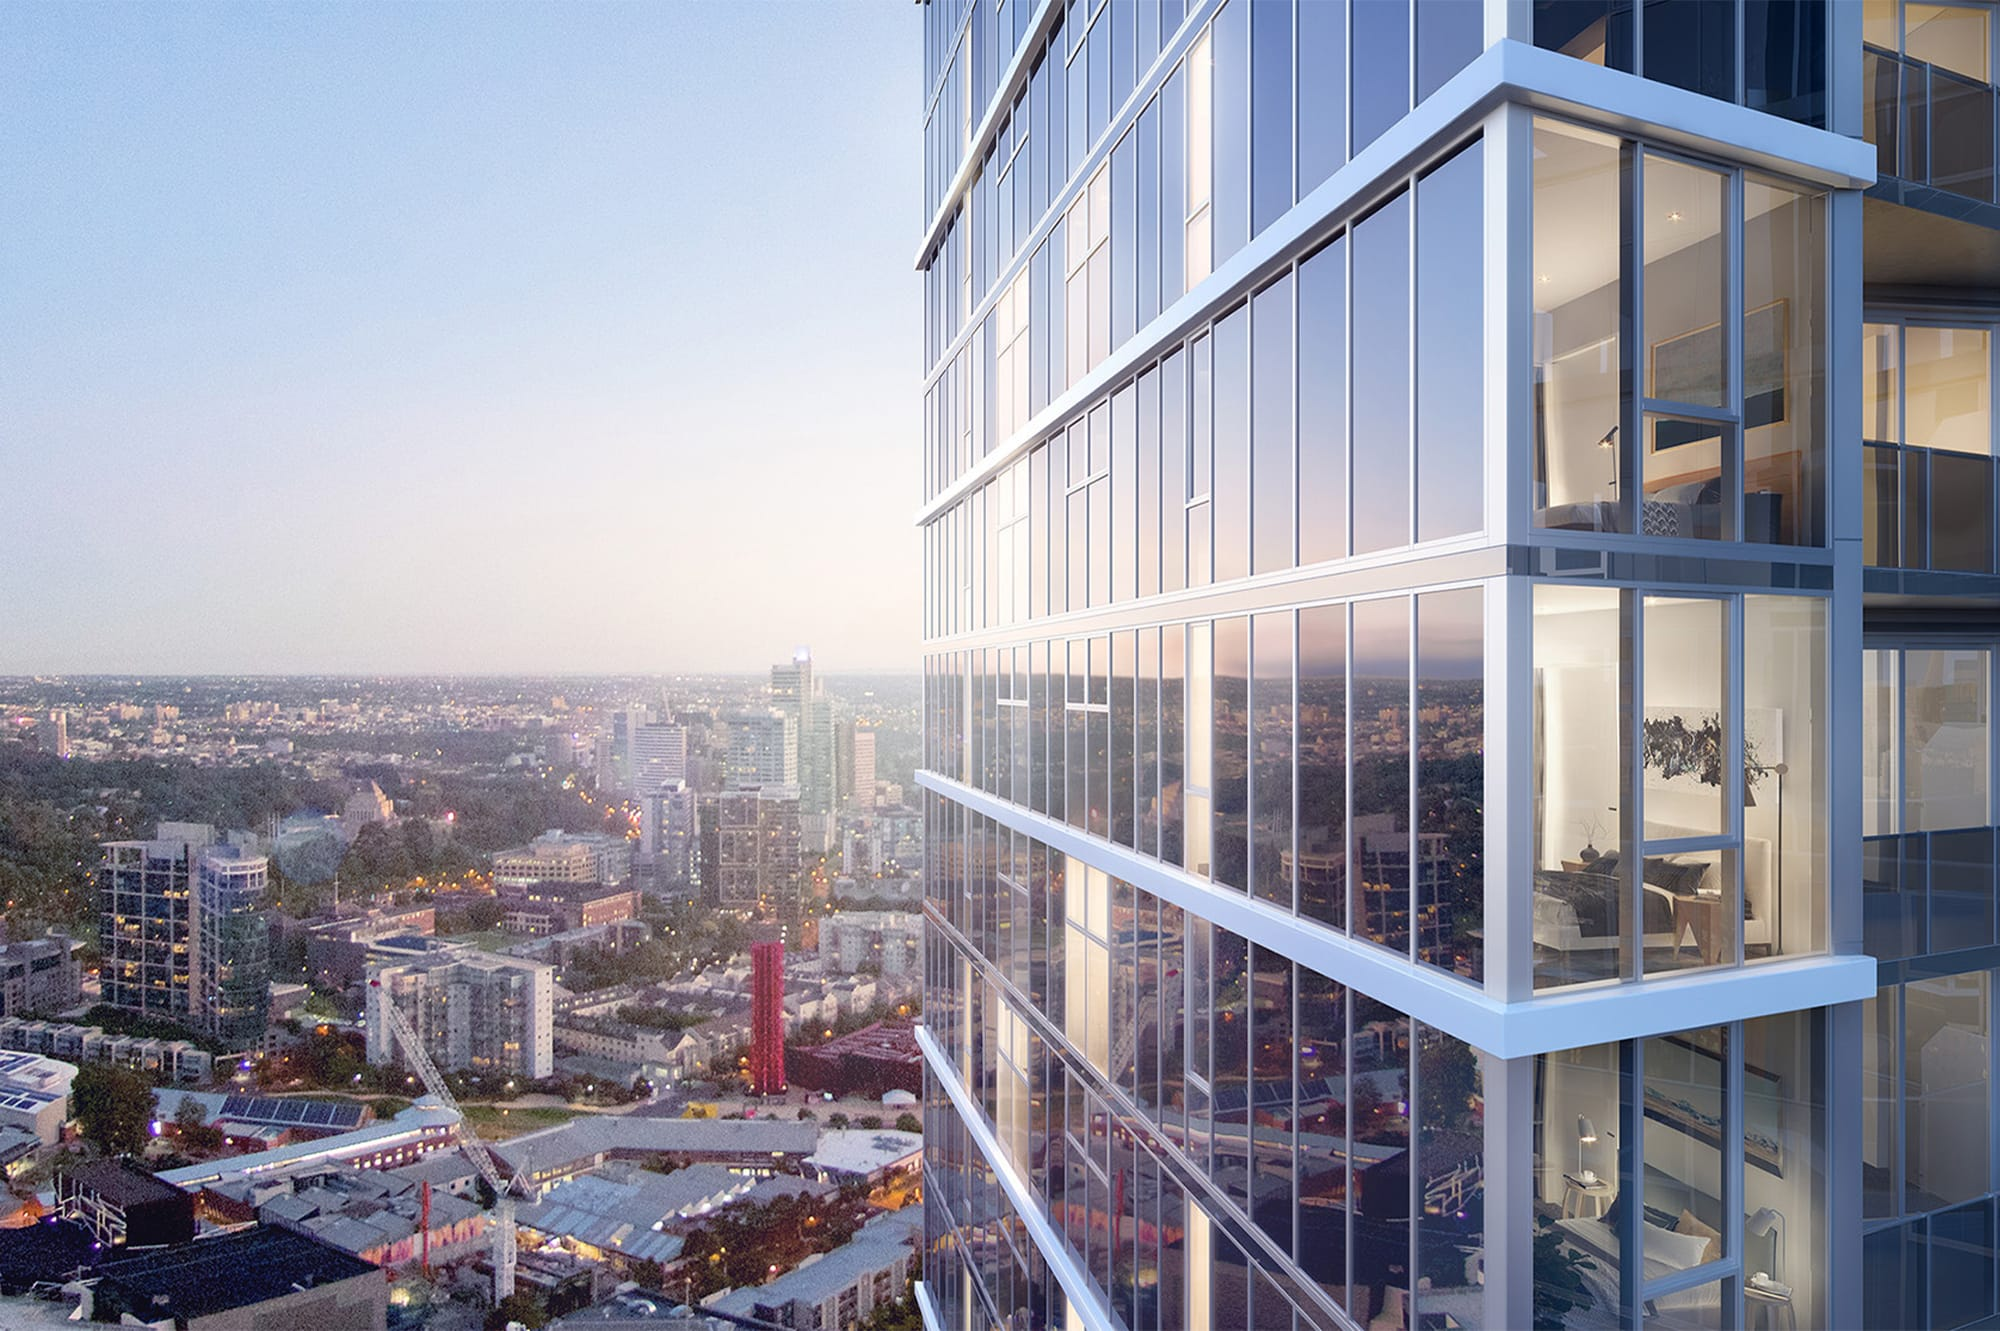 Construction has commenced on Southbank's newest major apartment development, Focus, brought to you by Central Equity